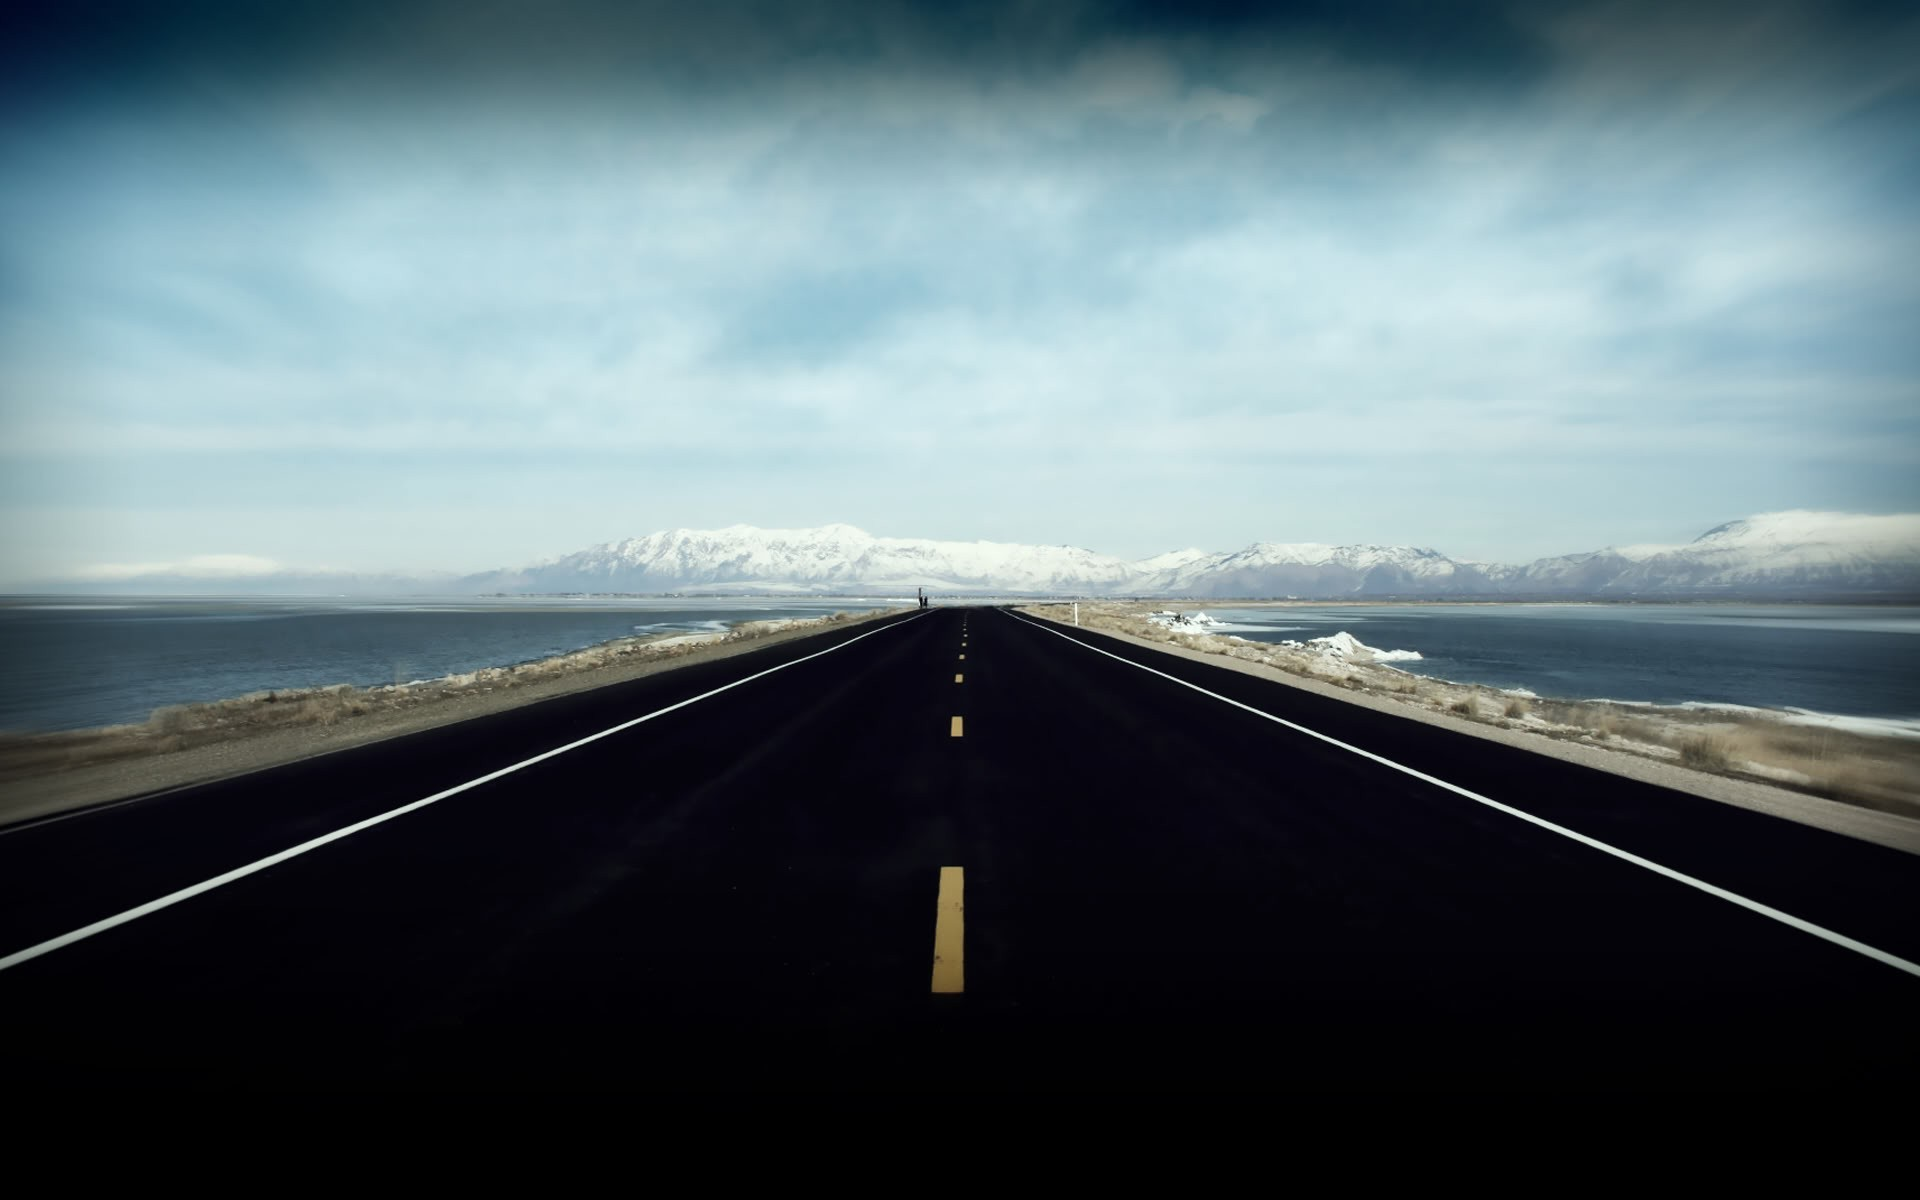 3840x1080 Wallpaper Car Nature Road Landscape Photography Water Wallpapers Hd